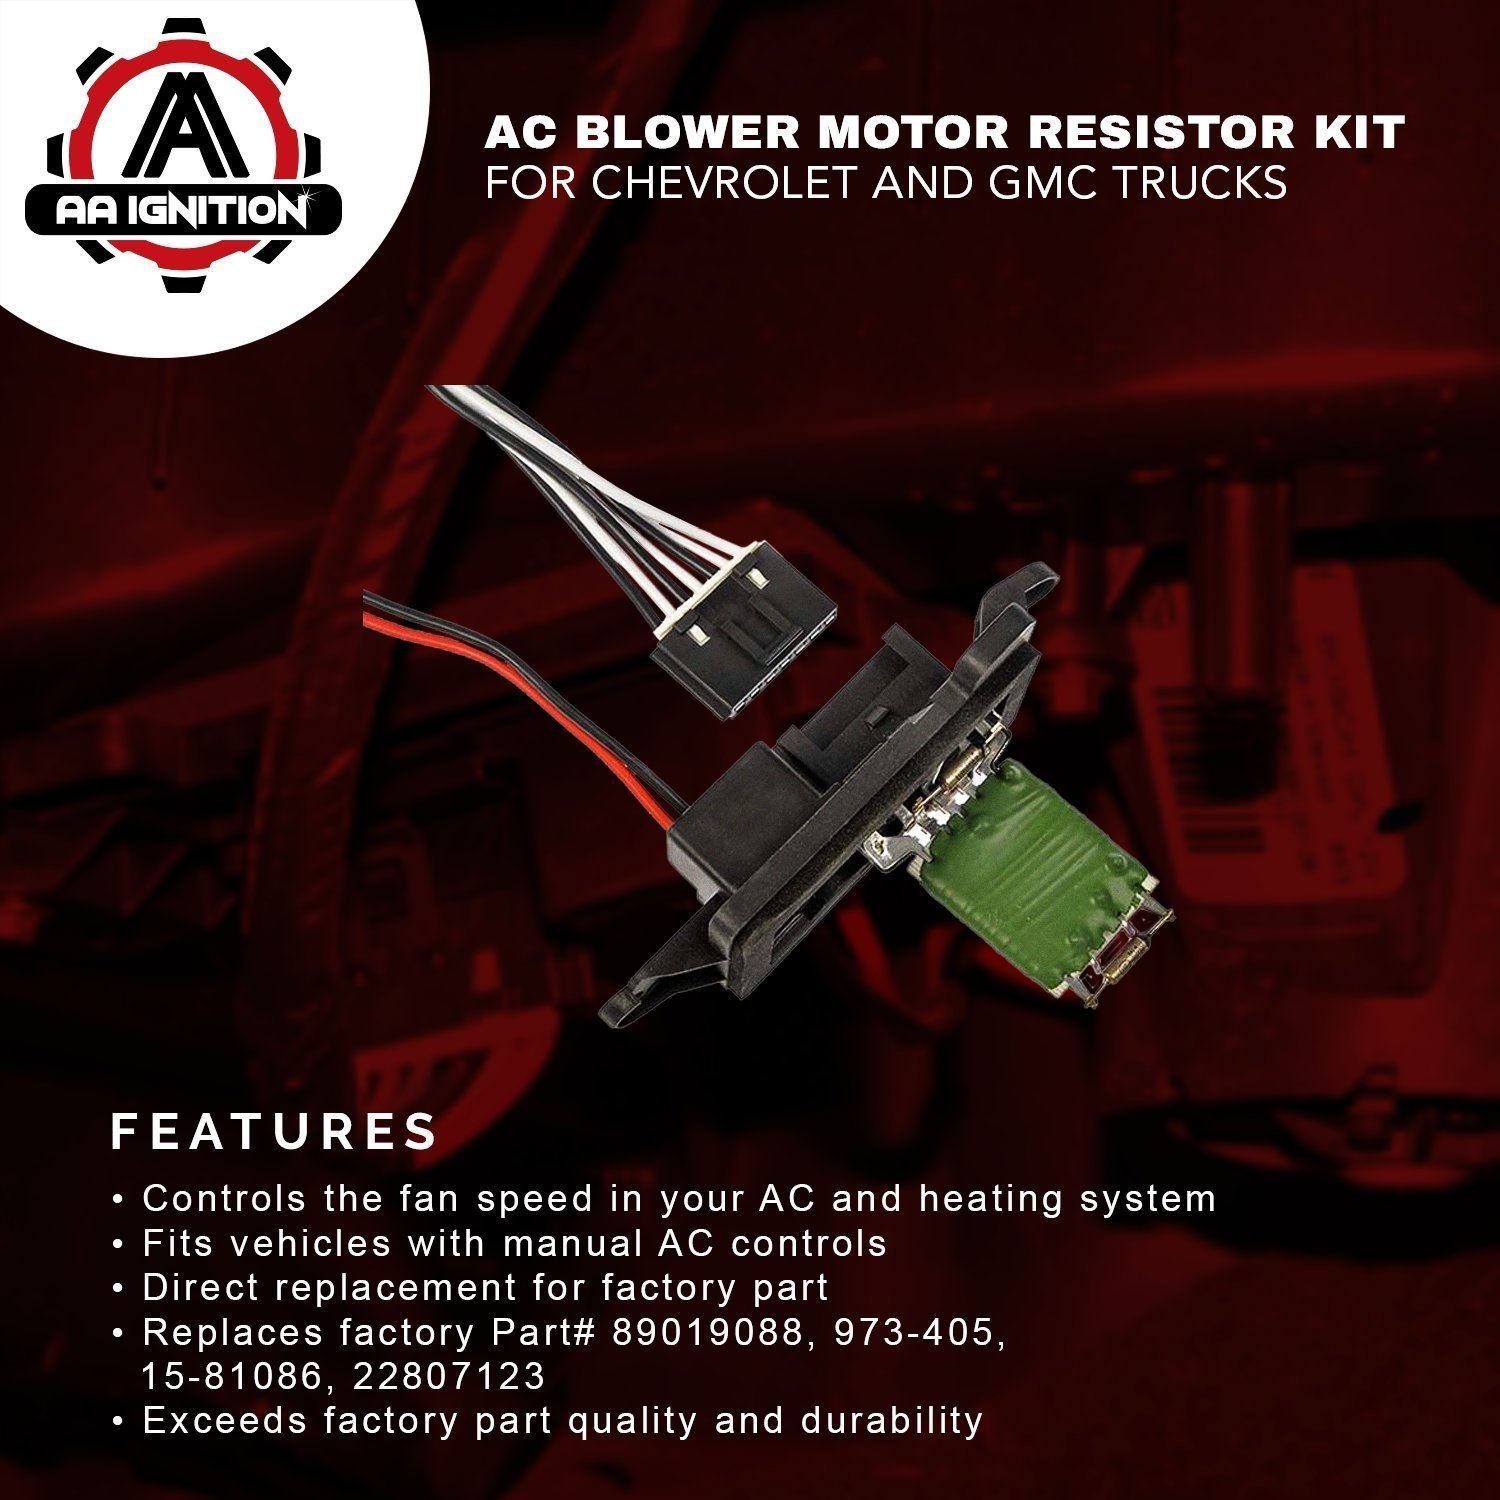 Ac Blower Motor Resistor Kit With Harness Replaces 97 C1500 Under Dash Wiring 89019088 973 405 15 81086 22807123 Fits Chevy Silverado Tahoe Suburban Avalanche